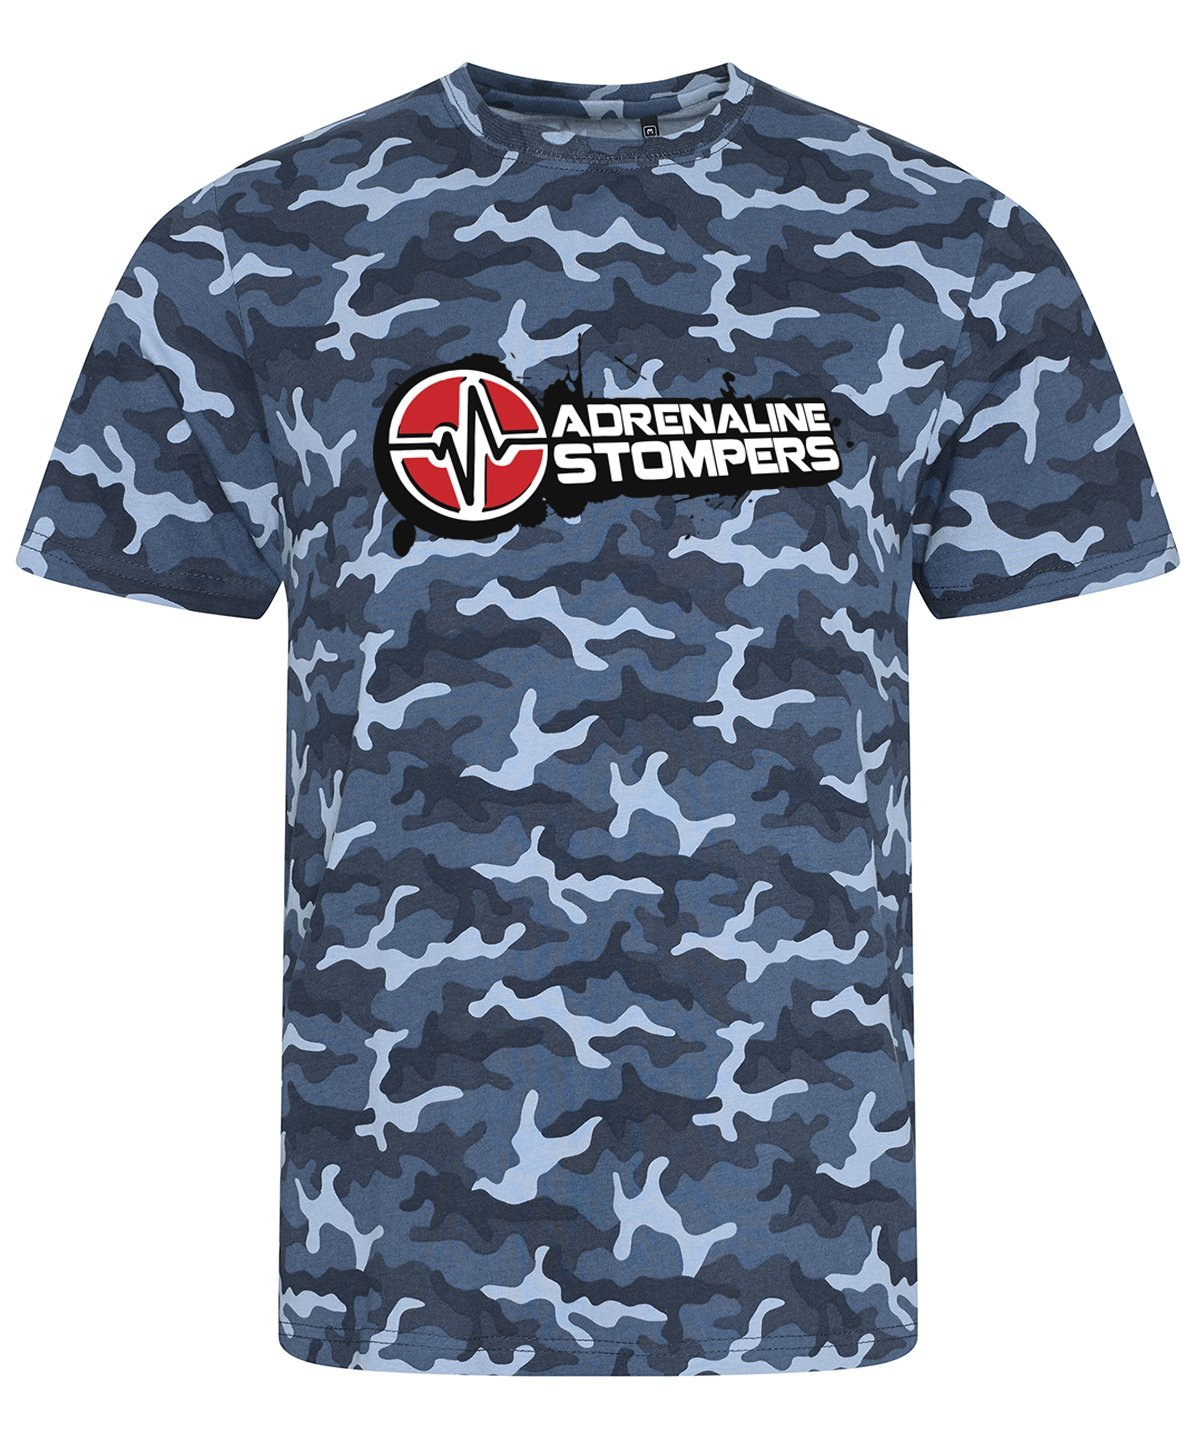 Adrenaline Stompers Blue Camo T-Shirt & Hoodie Adrenaline Stompers Unisex T-Shirt Small